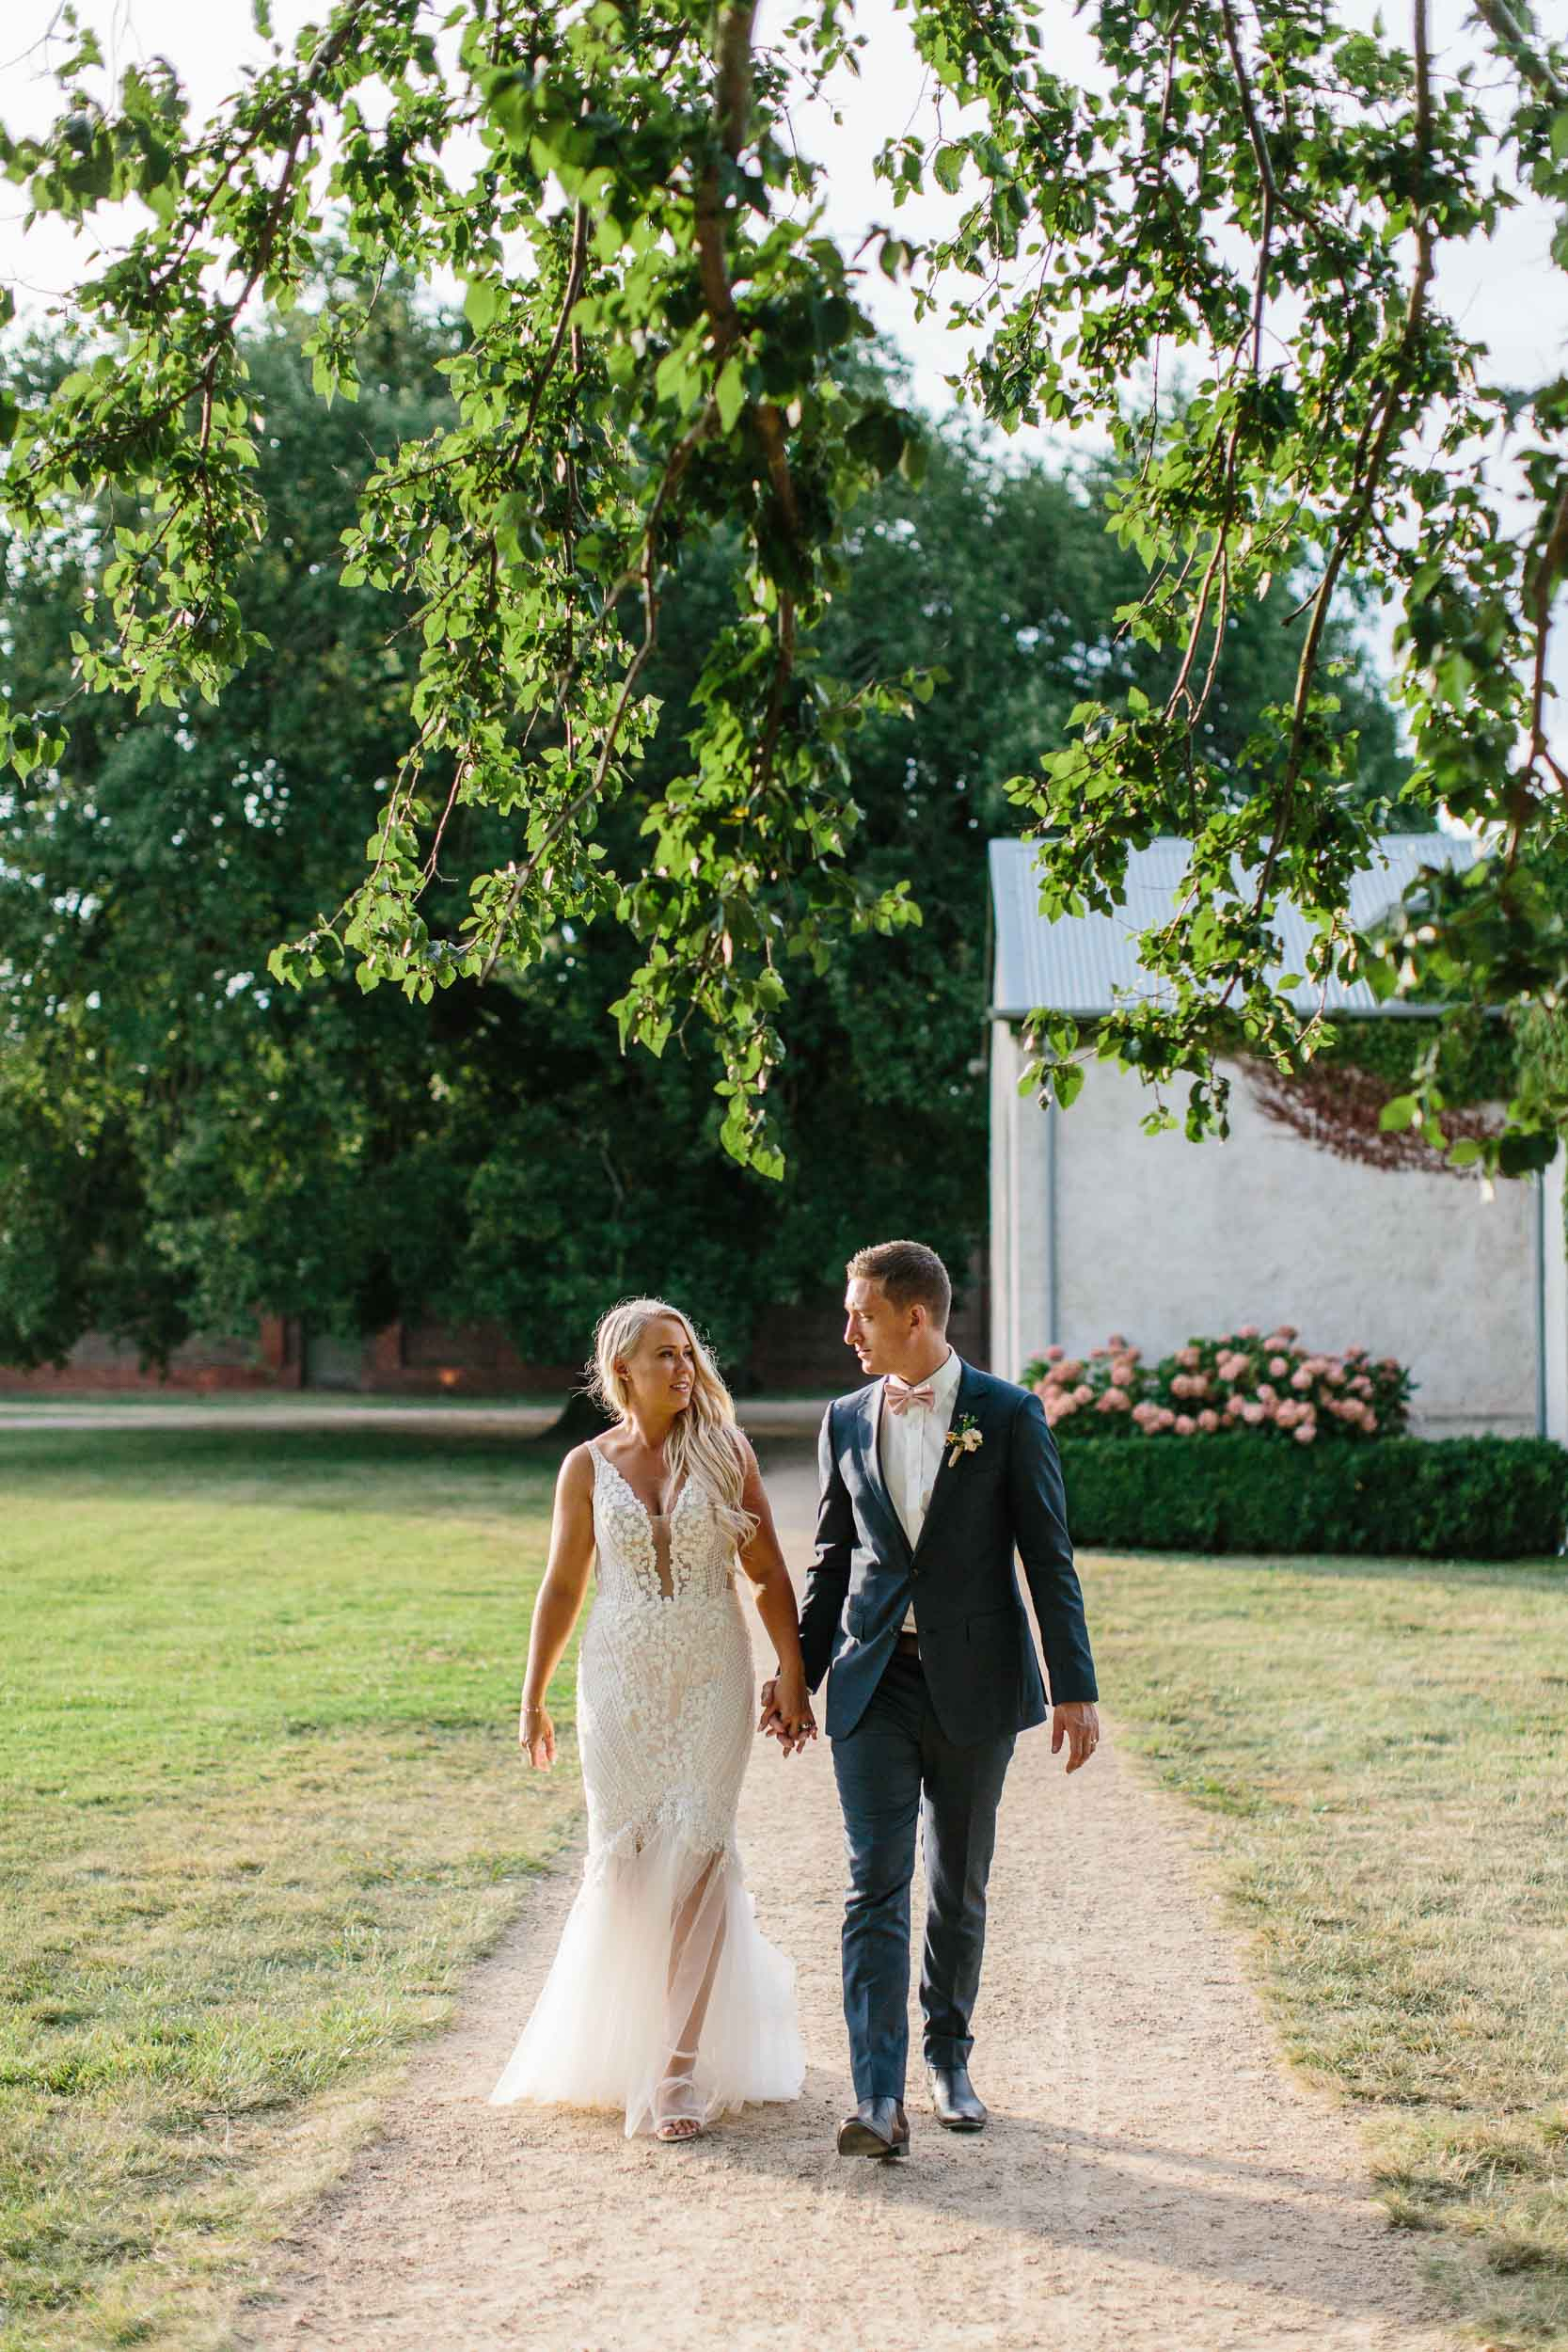 Kas-Richards-Stones-of-the-Yarra-Valley-Wedding-Pallas-Couture-Gown-560.jpg